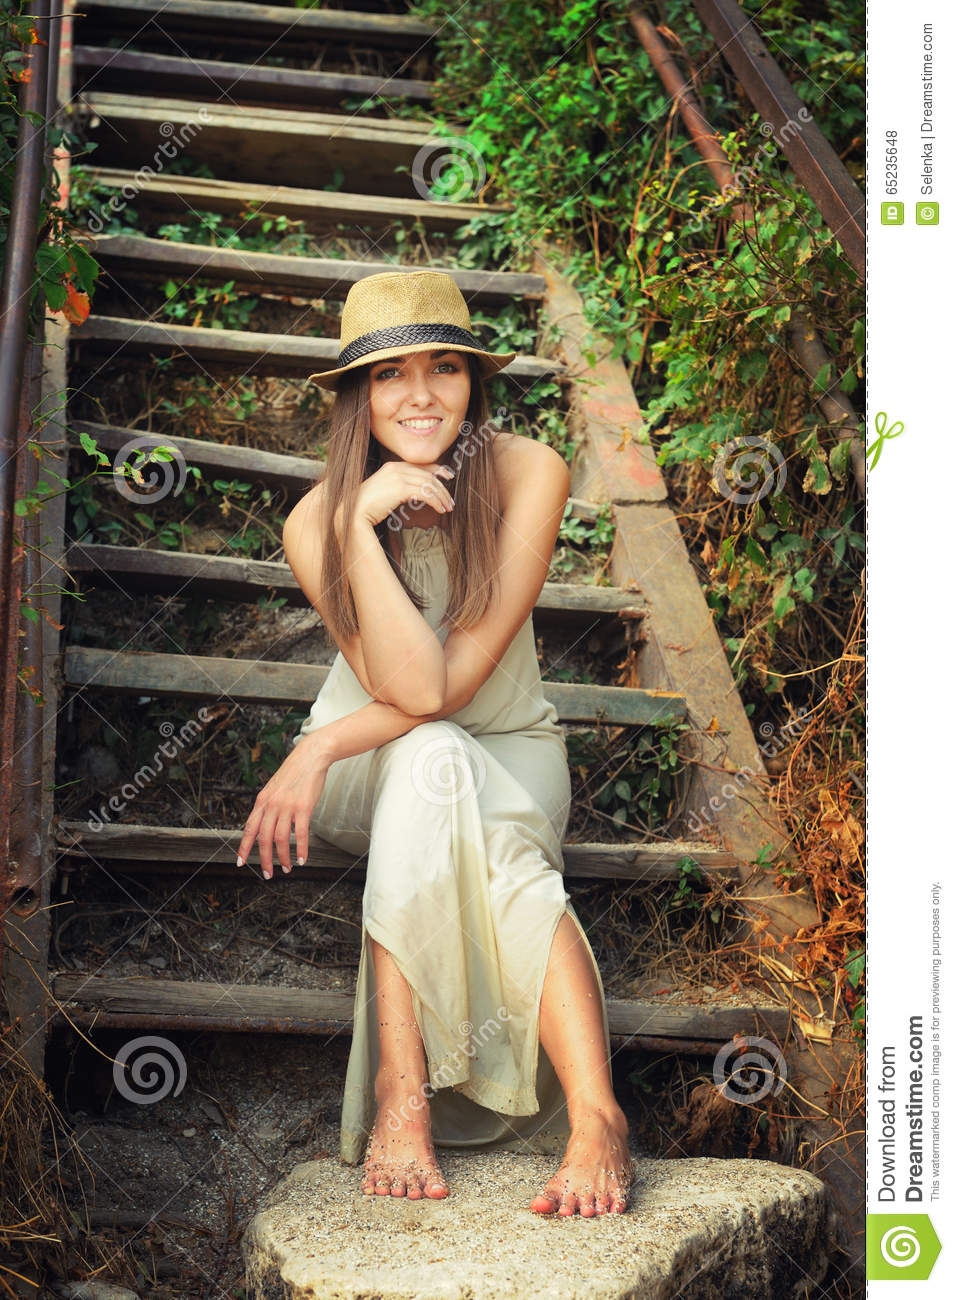 https://thumbs.dreamstime.com/z/happy-smiling-young-woman-dressed-hat-white-long-dress-sitting-barefoot-vintage-wooden-stairs-park-65235648.jpg